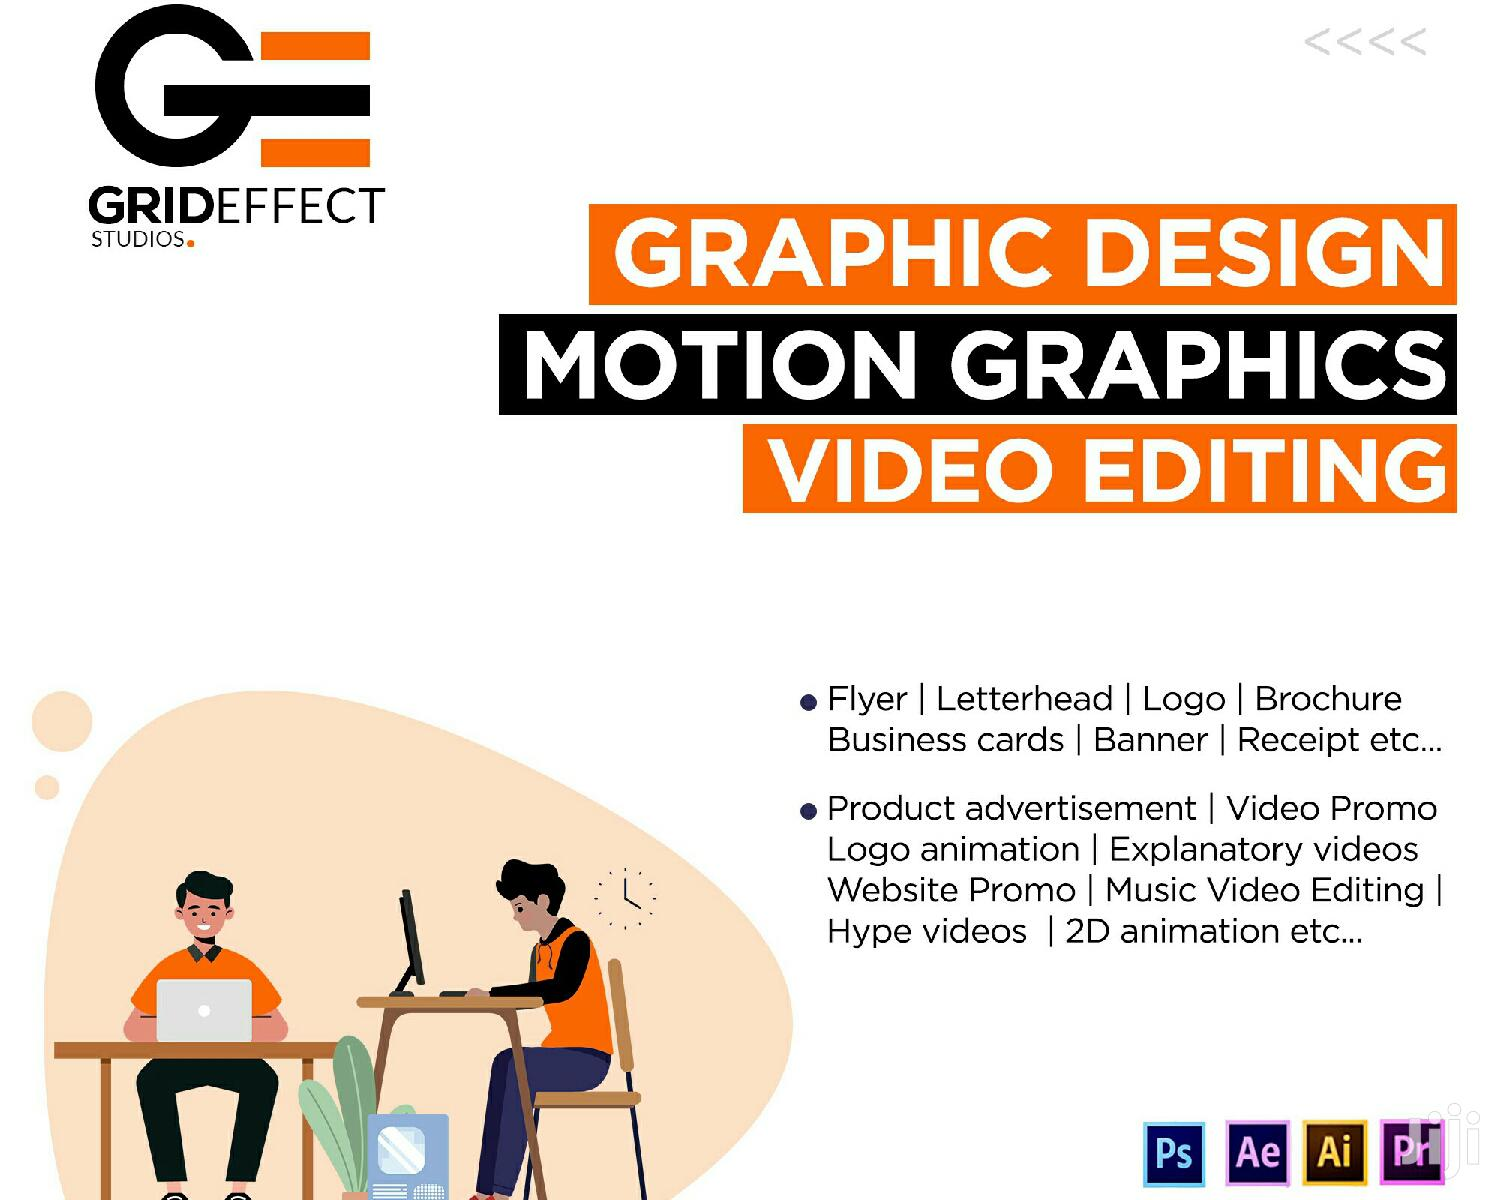 Graphic Design | Video Editing | Motion Graphics